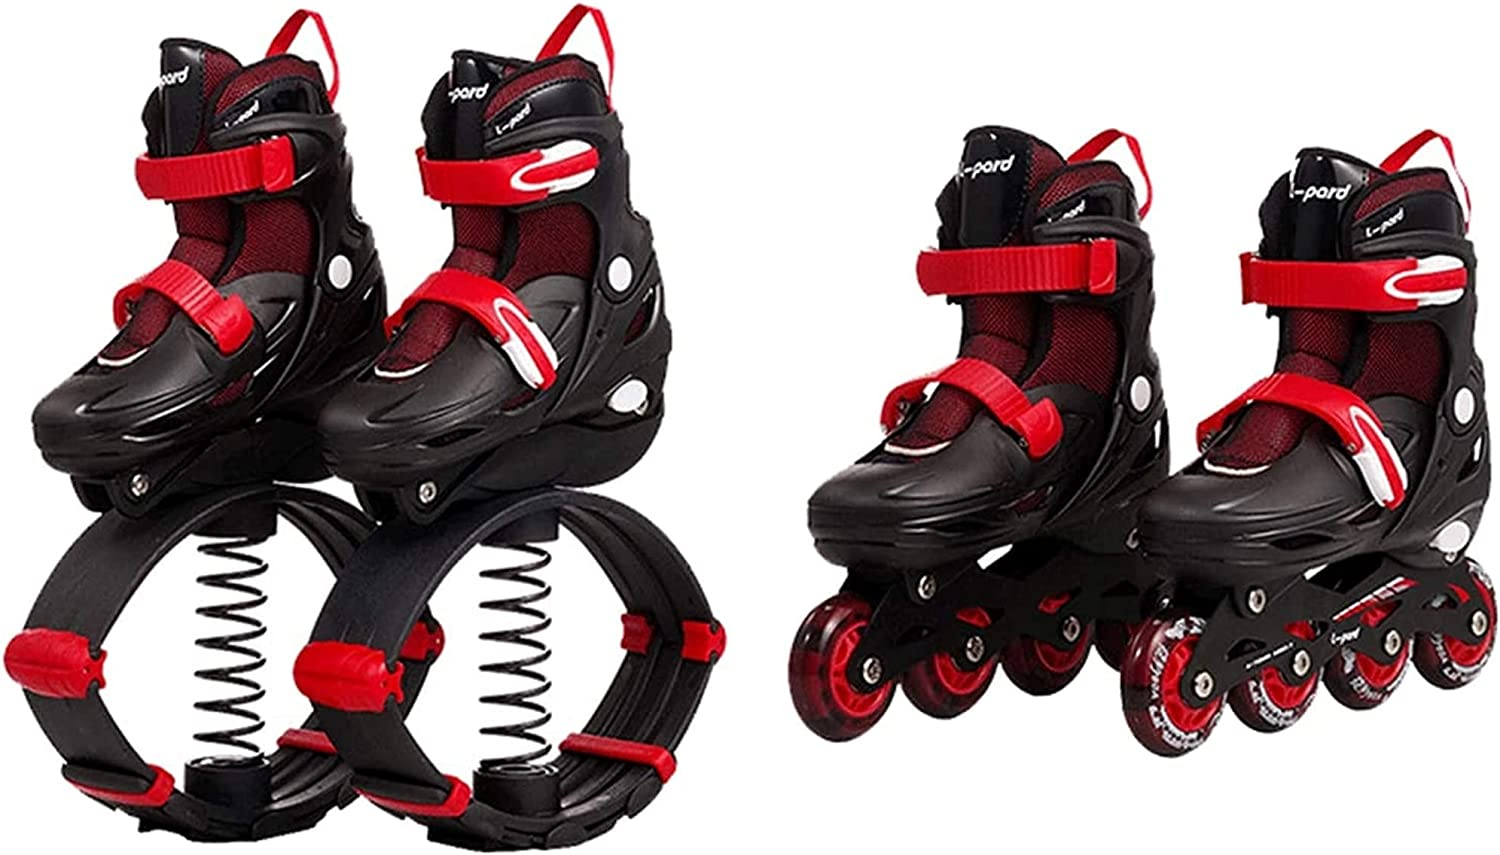 Skates Bounce Shoes All stores are sold out sold Roller skates purpose shoe Kids Elastic Dual